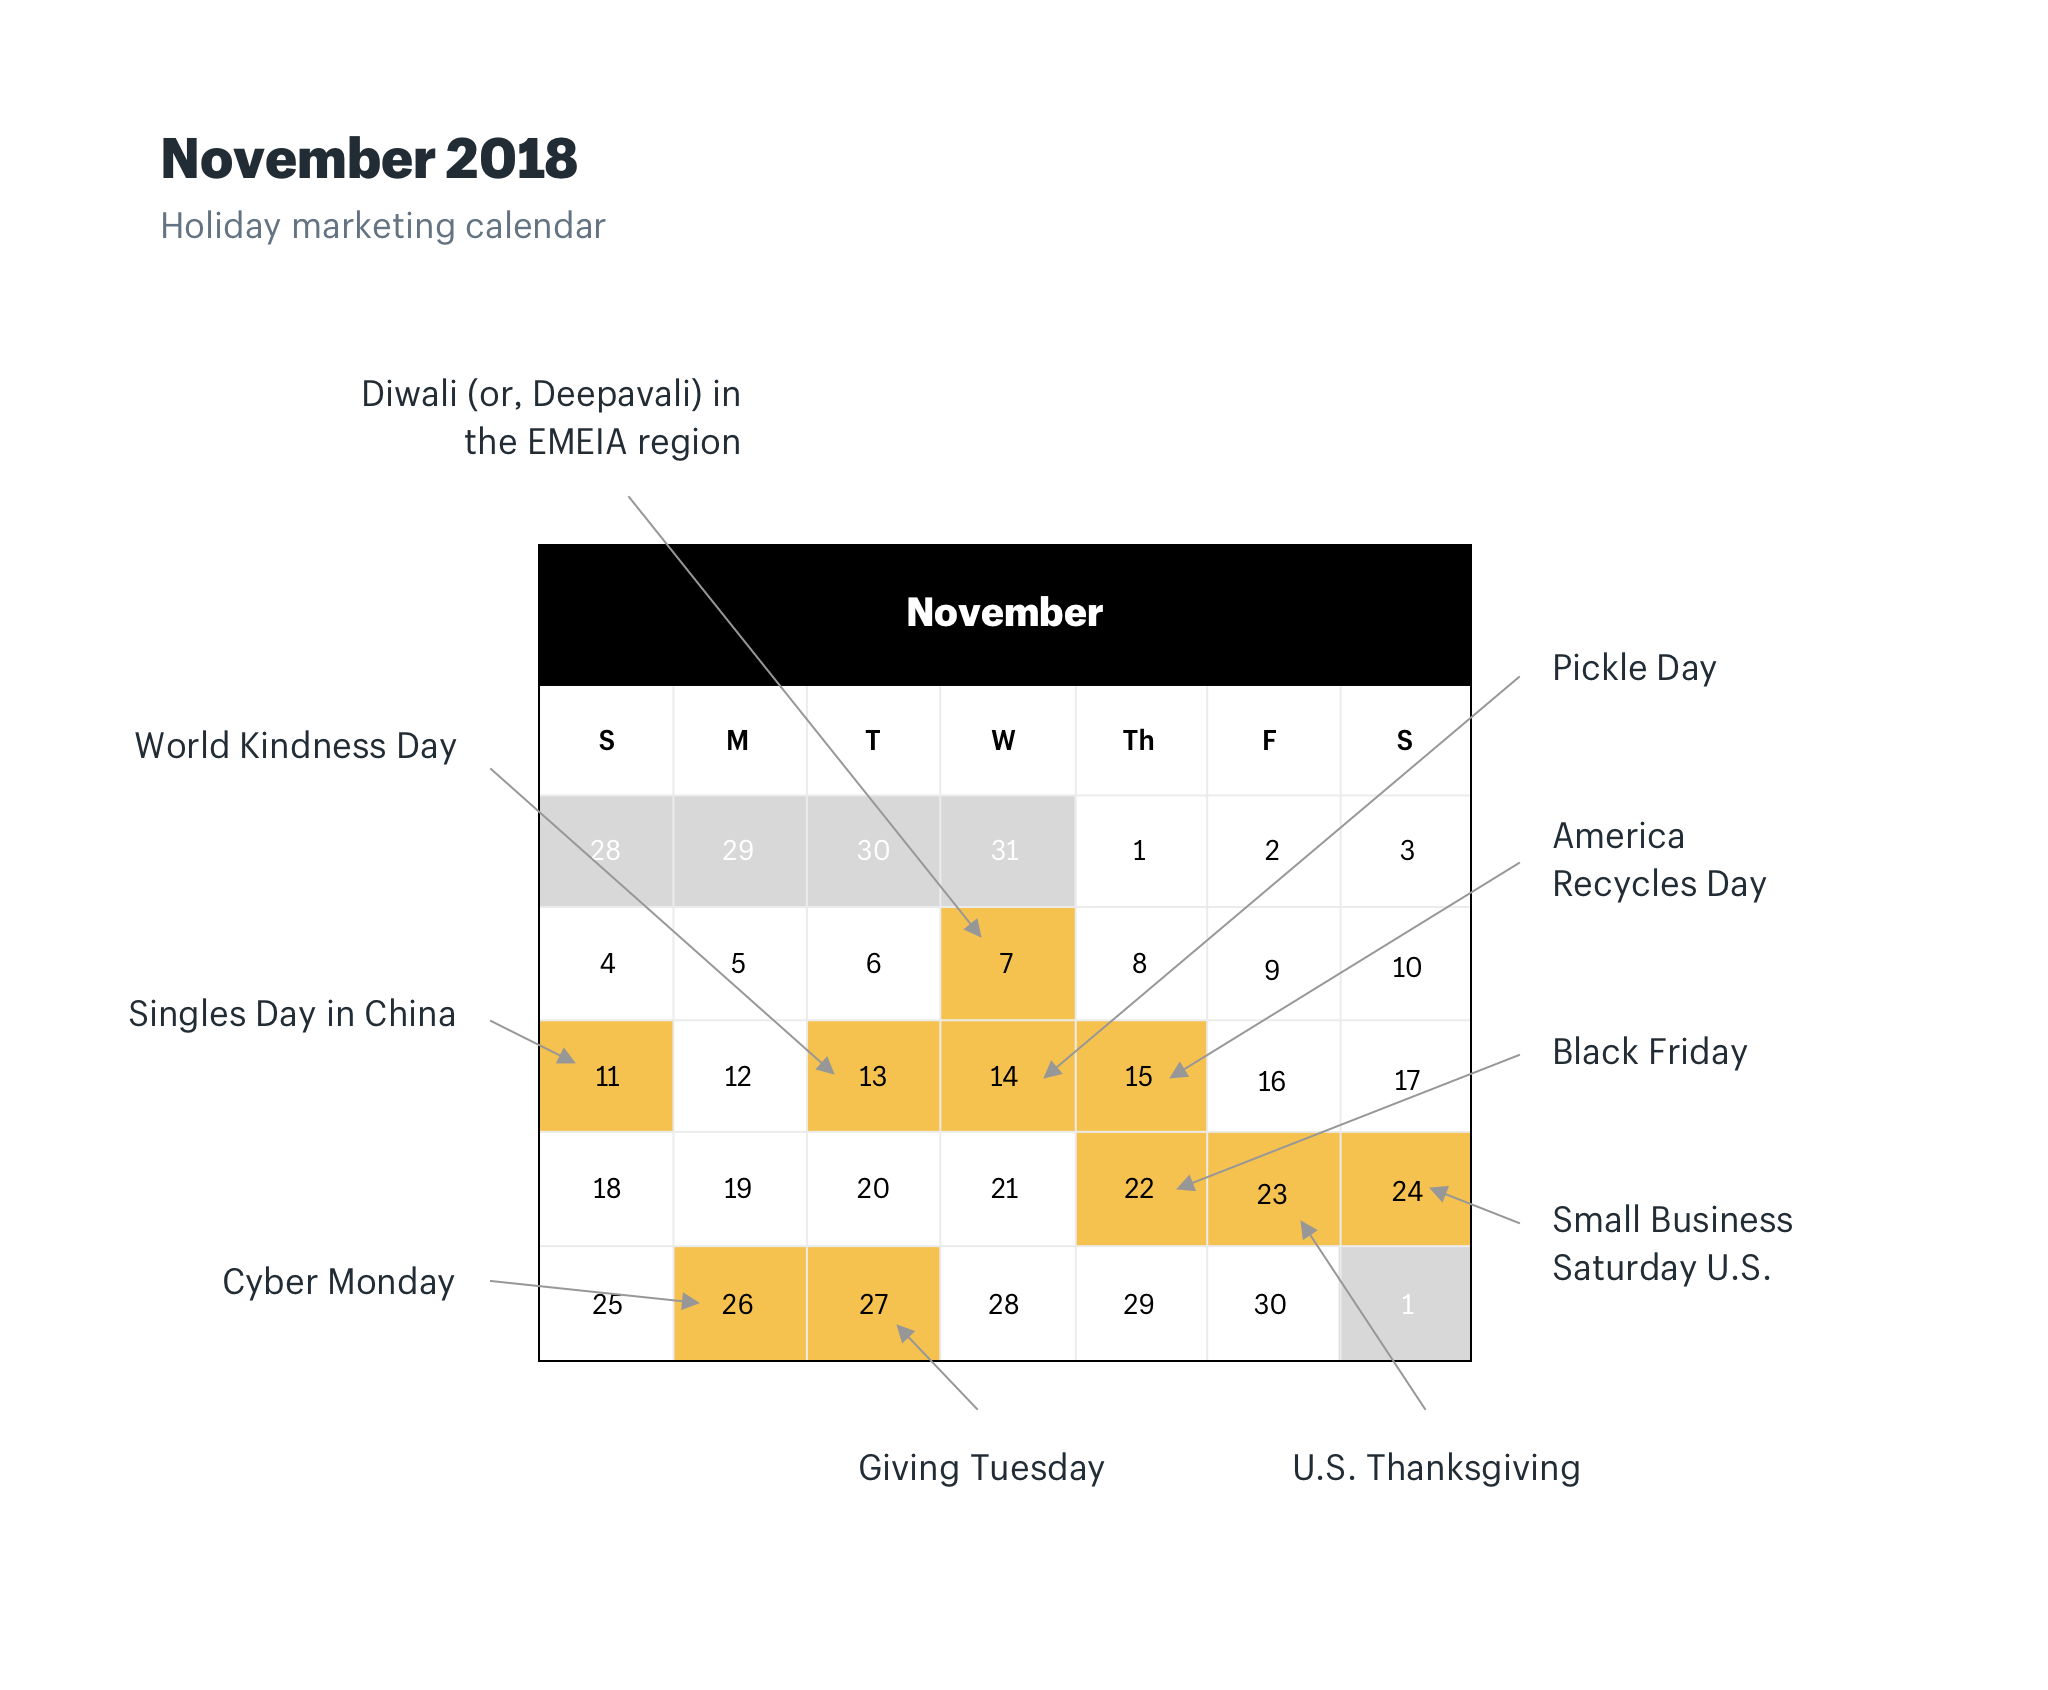 November holiday marketing calendar 2018